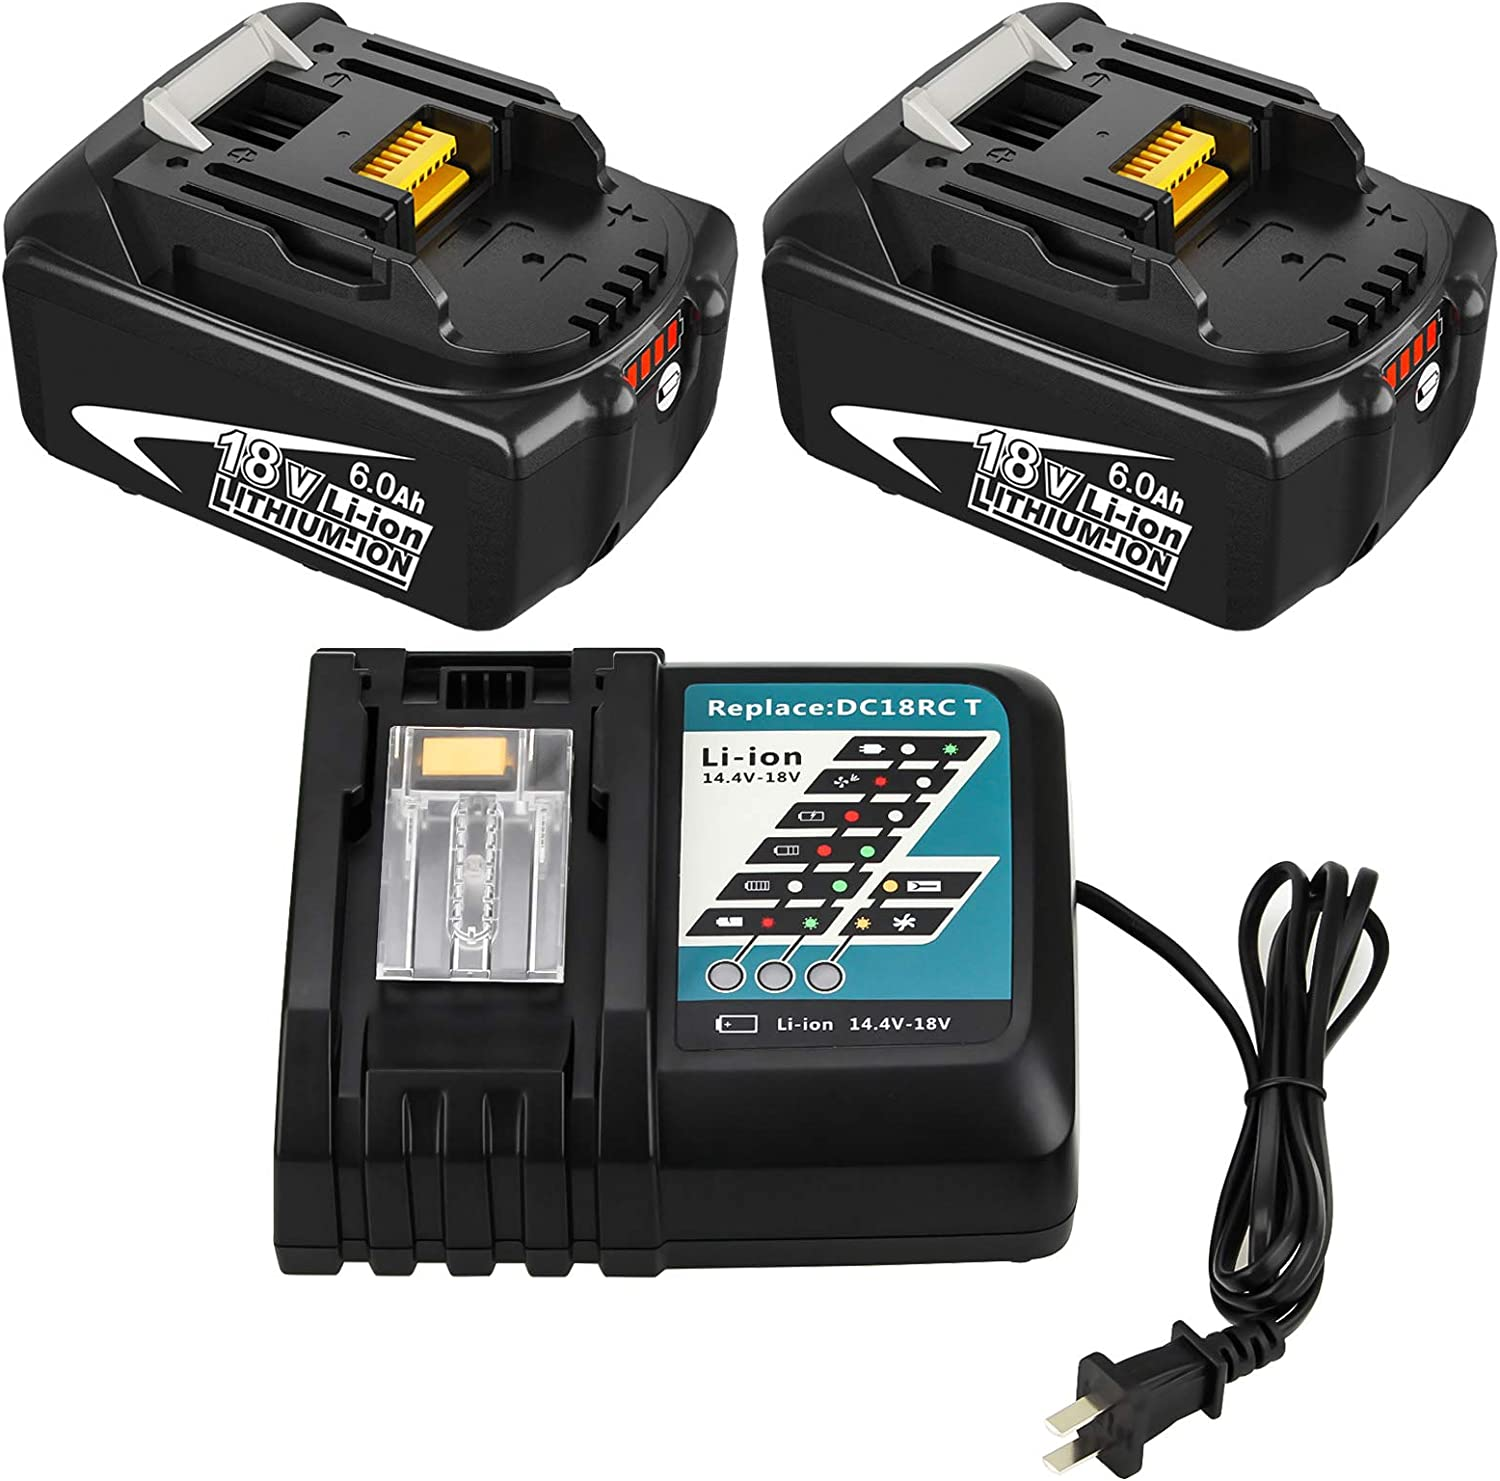 6.0Ah 別倉庫からの配送 BL1860B Battery + DC18RC C Replacement Charger and 期間限定特価品